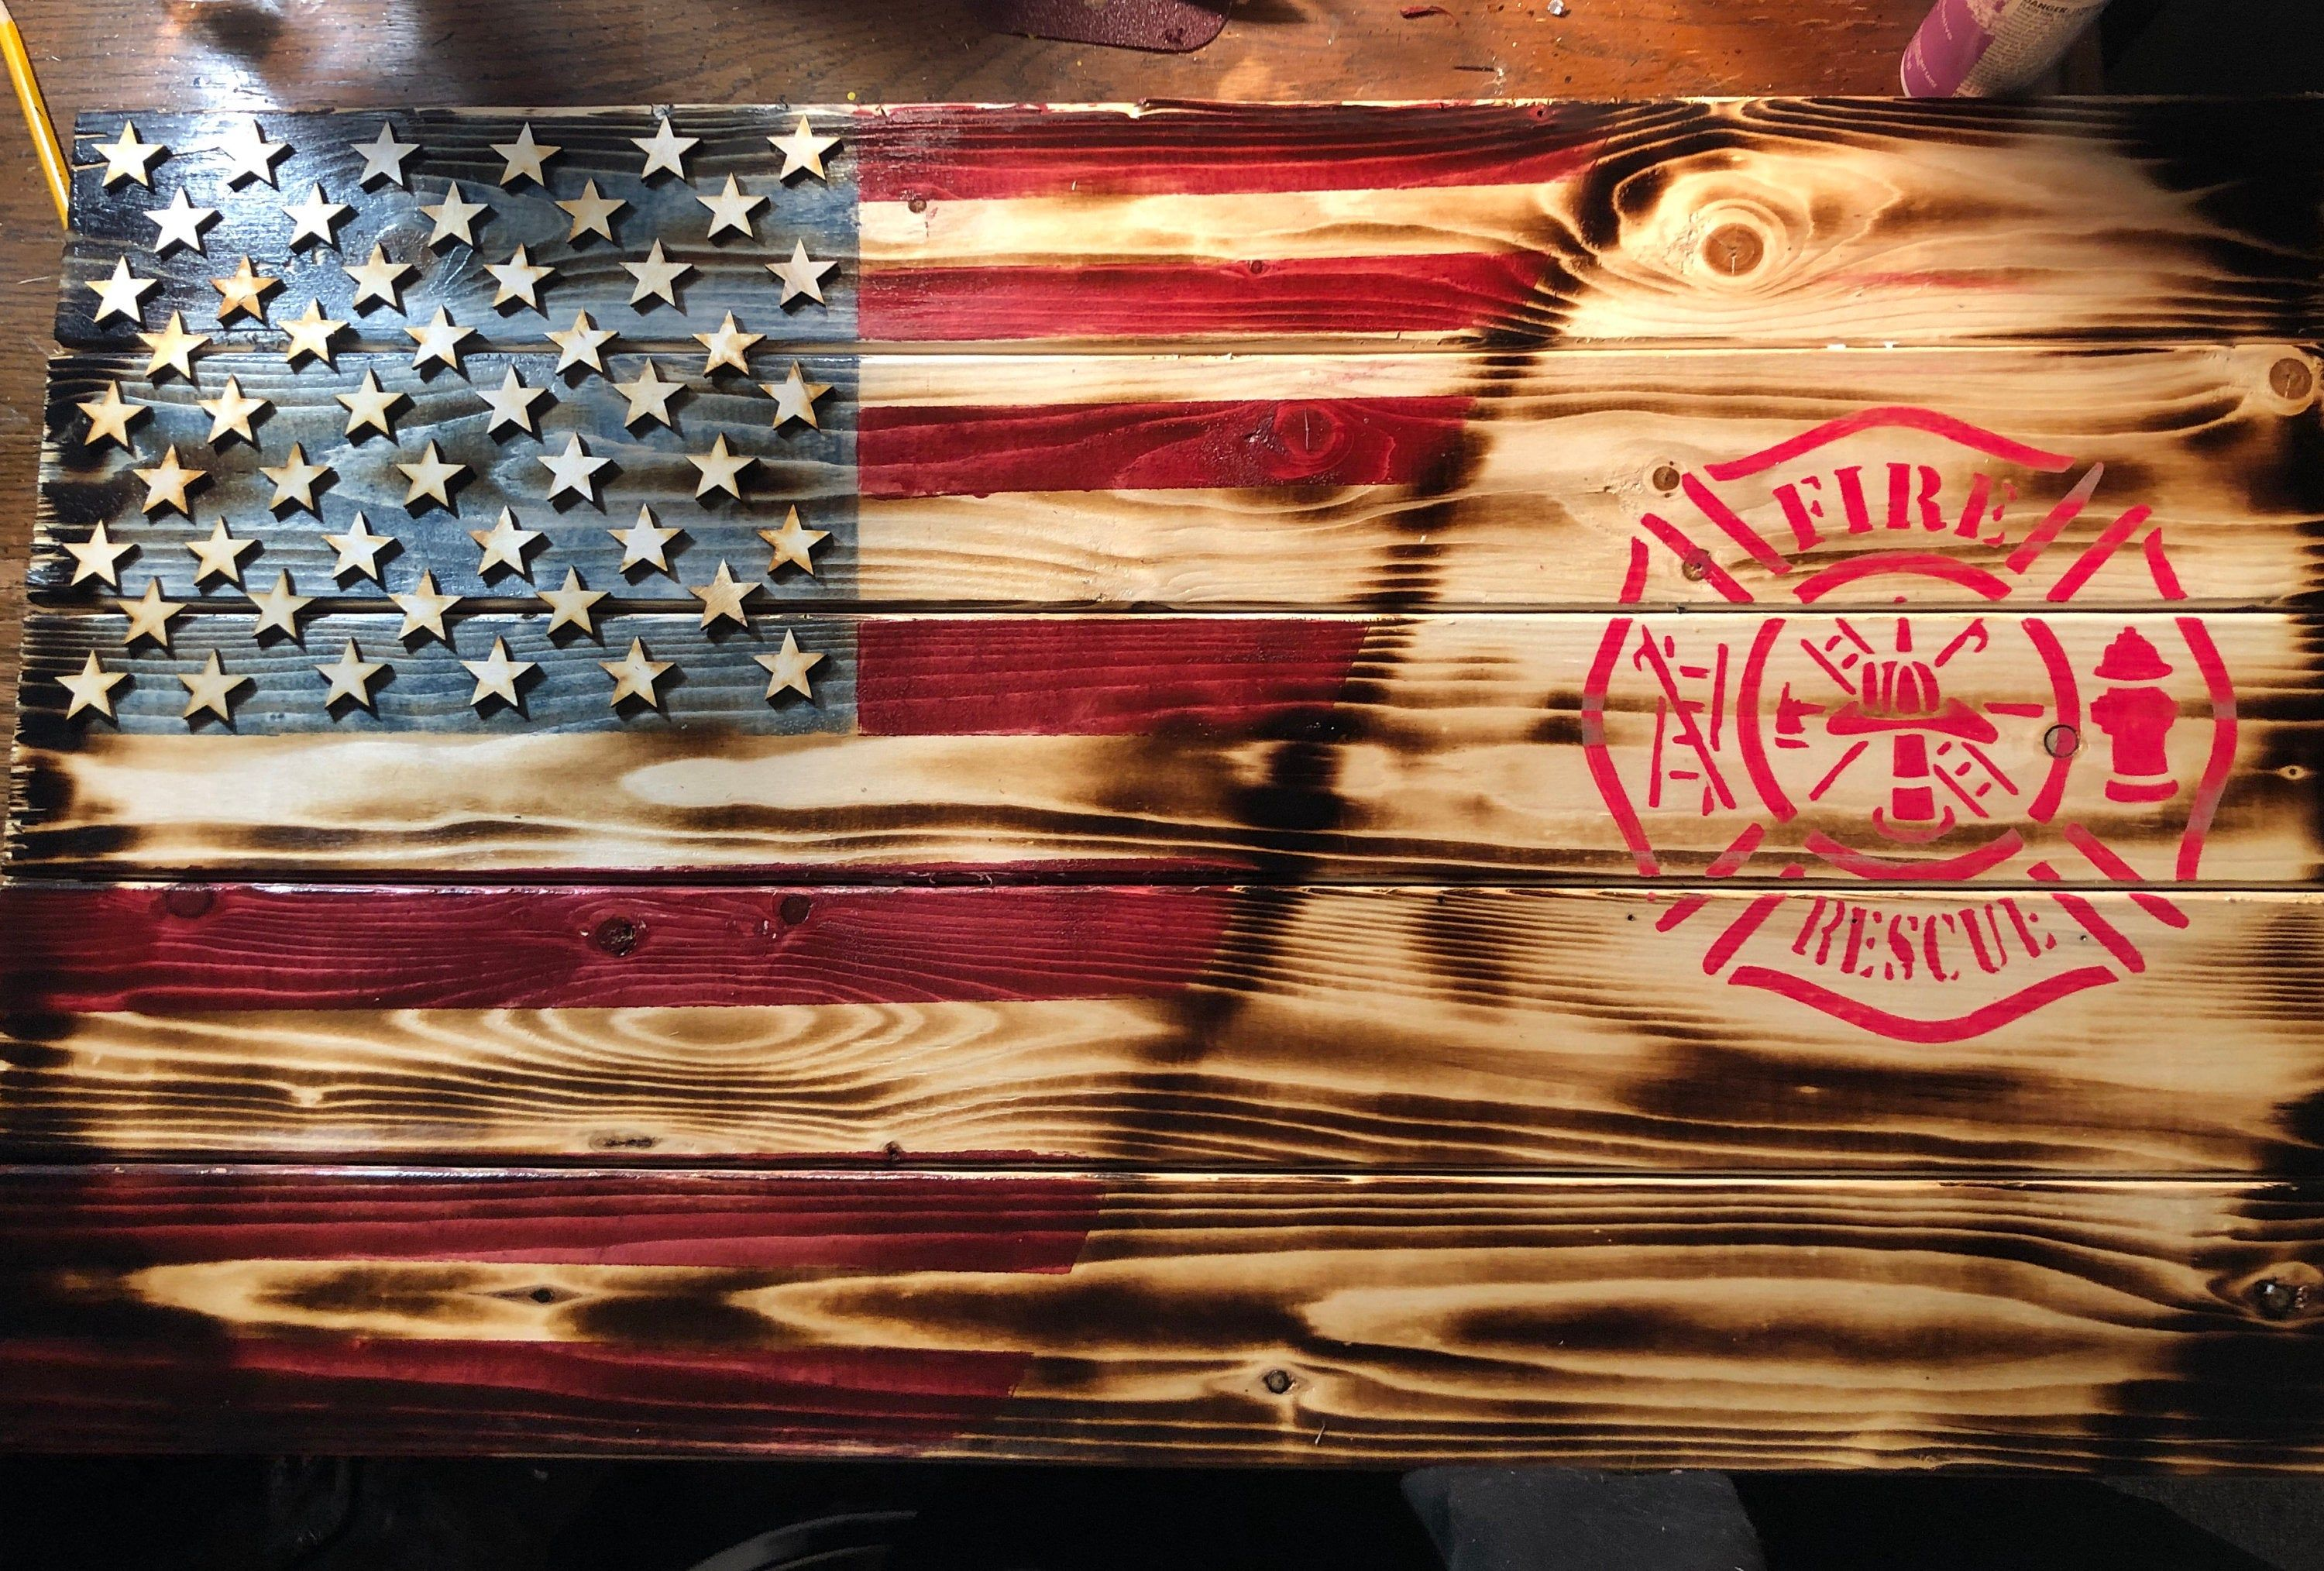 Usa Fire Rescue Wood Burned Stained Handprinted Flag Decor By Icalaverainc On Etsy In 2020 Rescued Wood Wood Flag Diy Diy Wood Pallet Projects